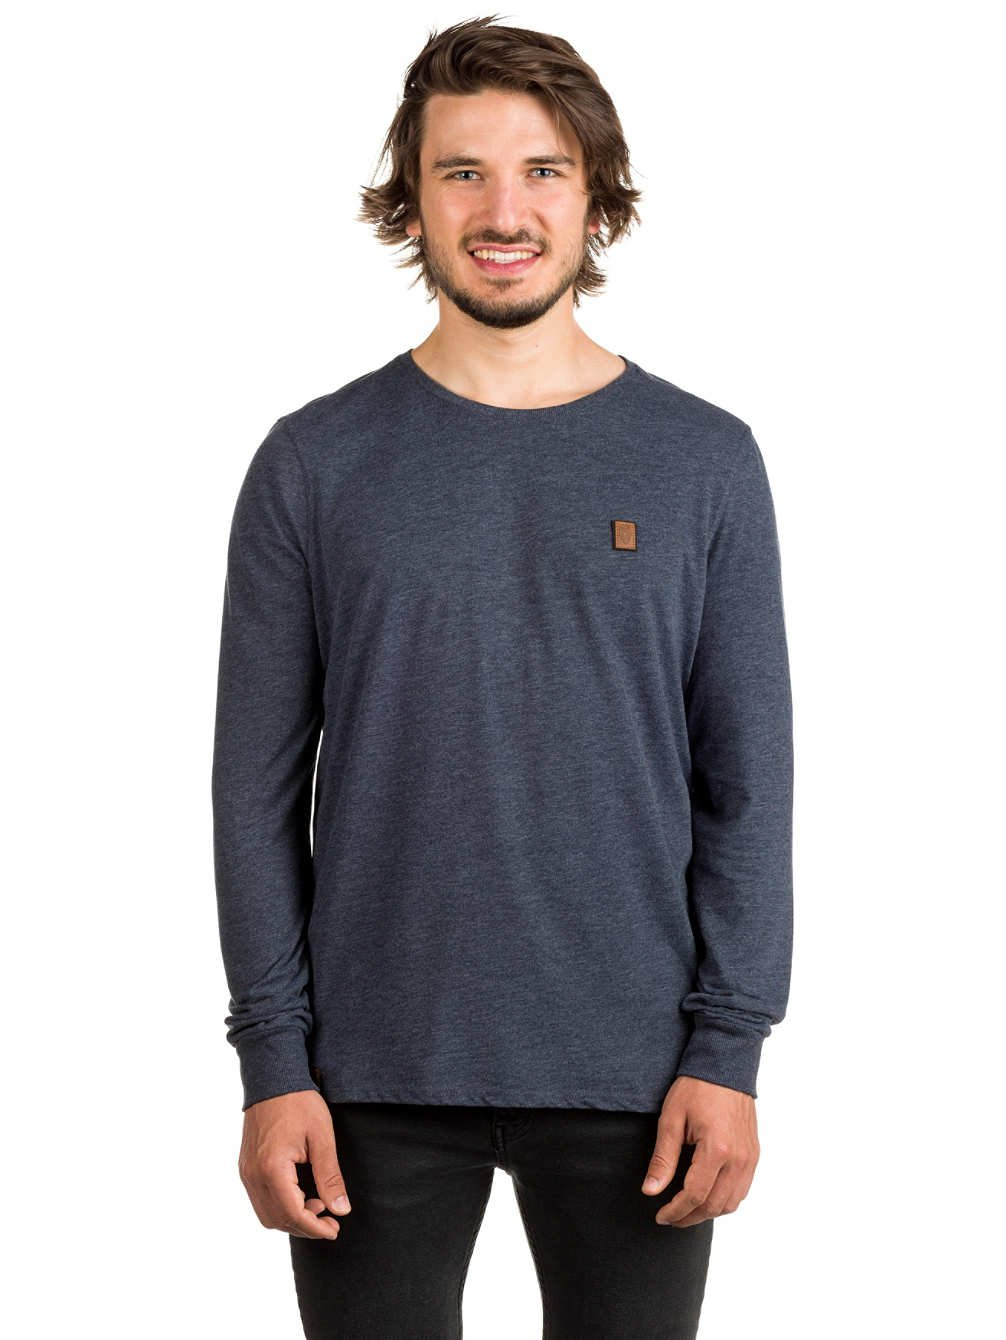 Longsleeve Men Naketano Italienischer Hengst Langen V T-Shirt LS:  Amazon.co.uk: Clothing